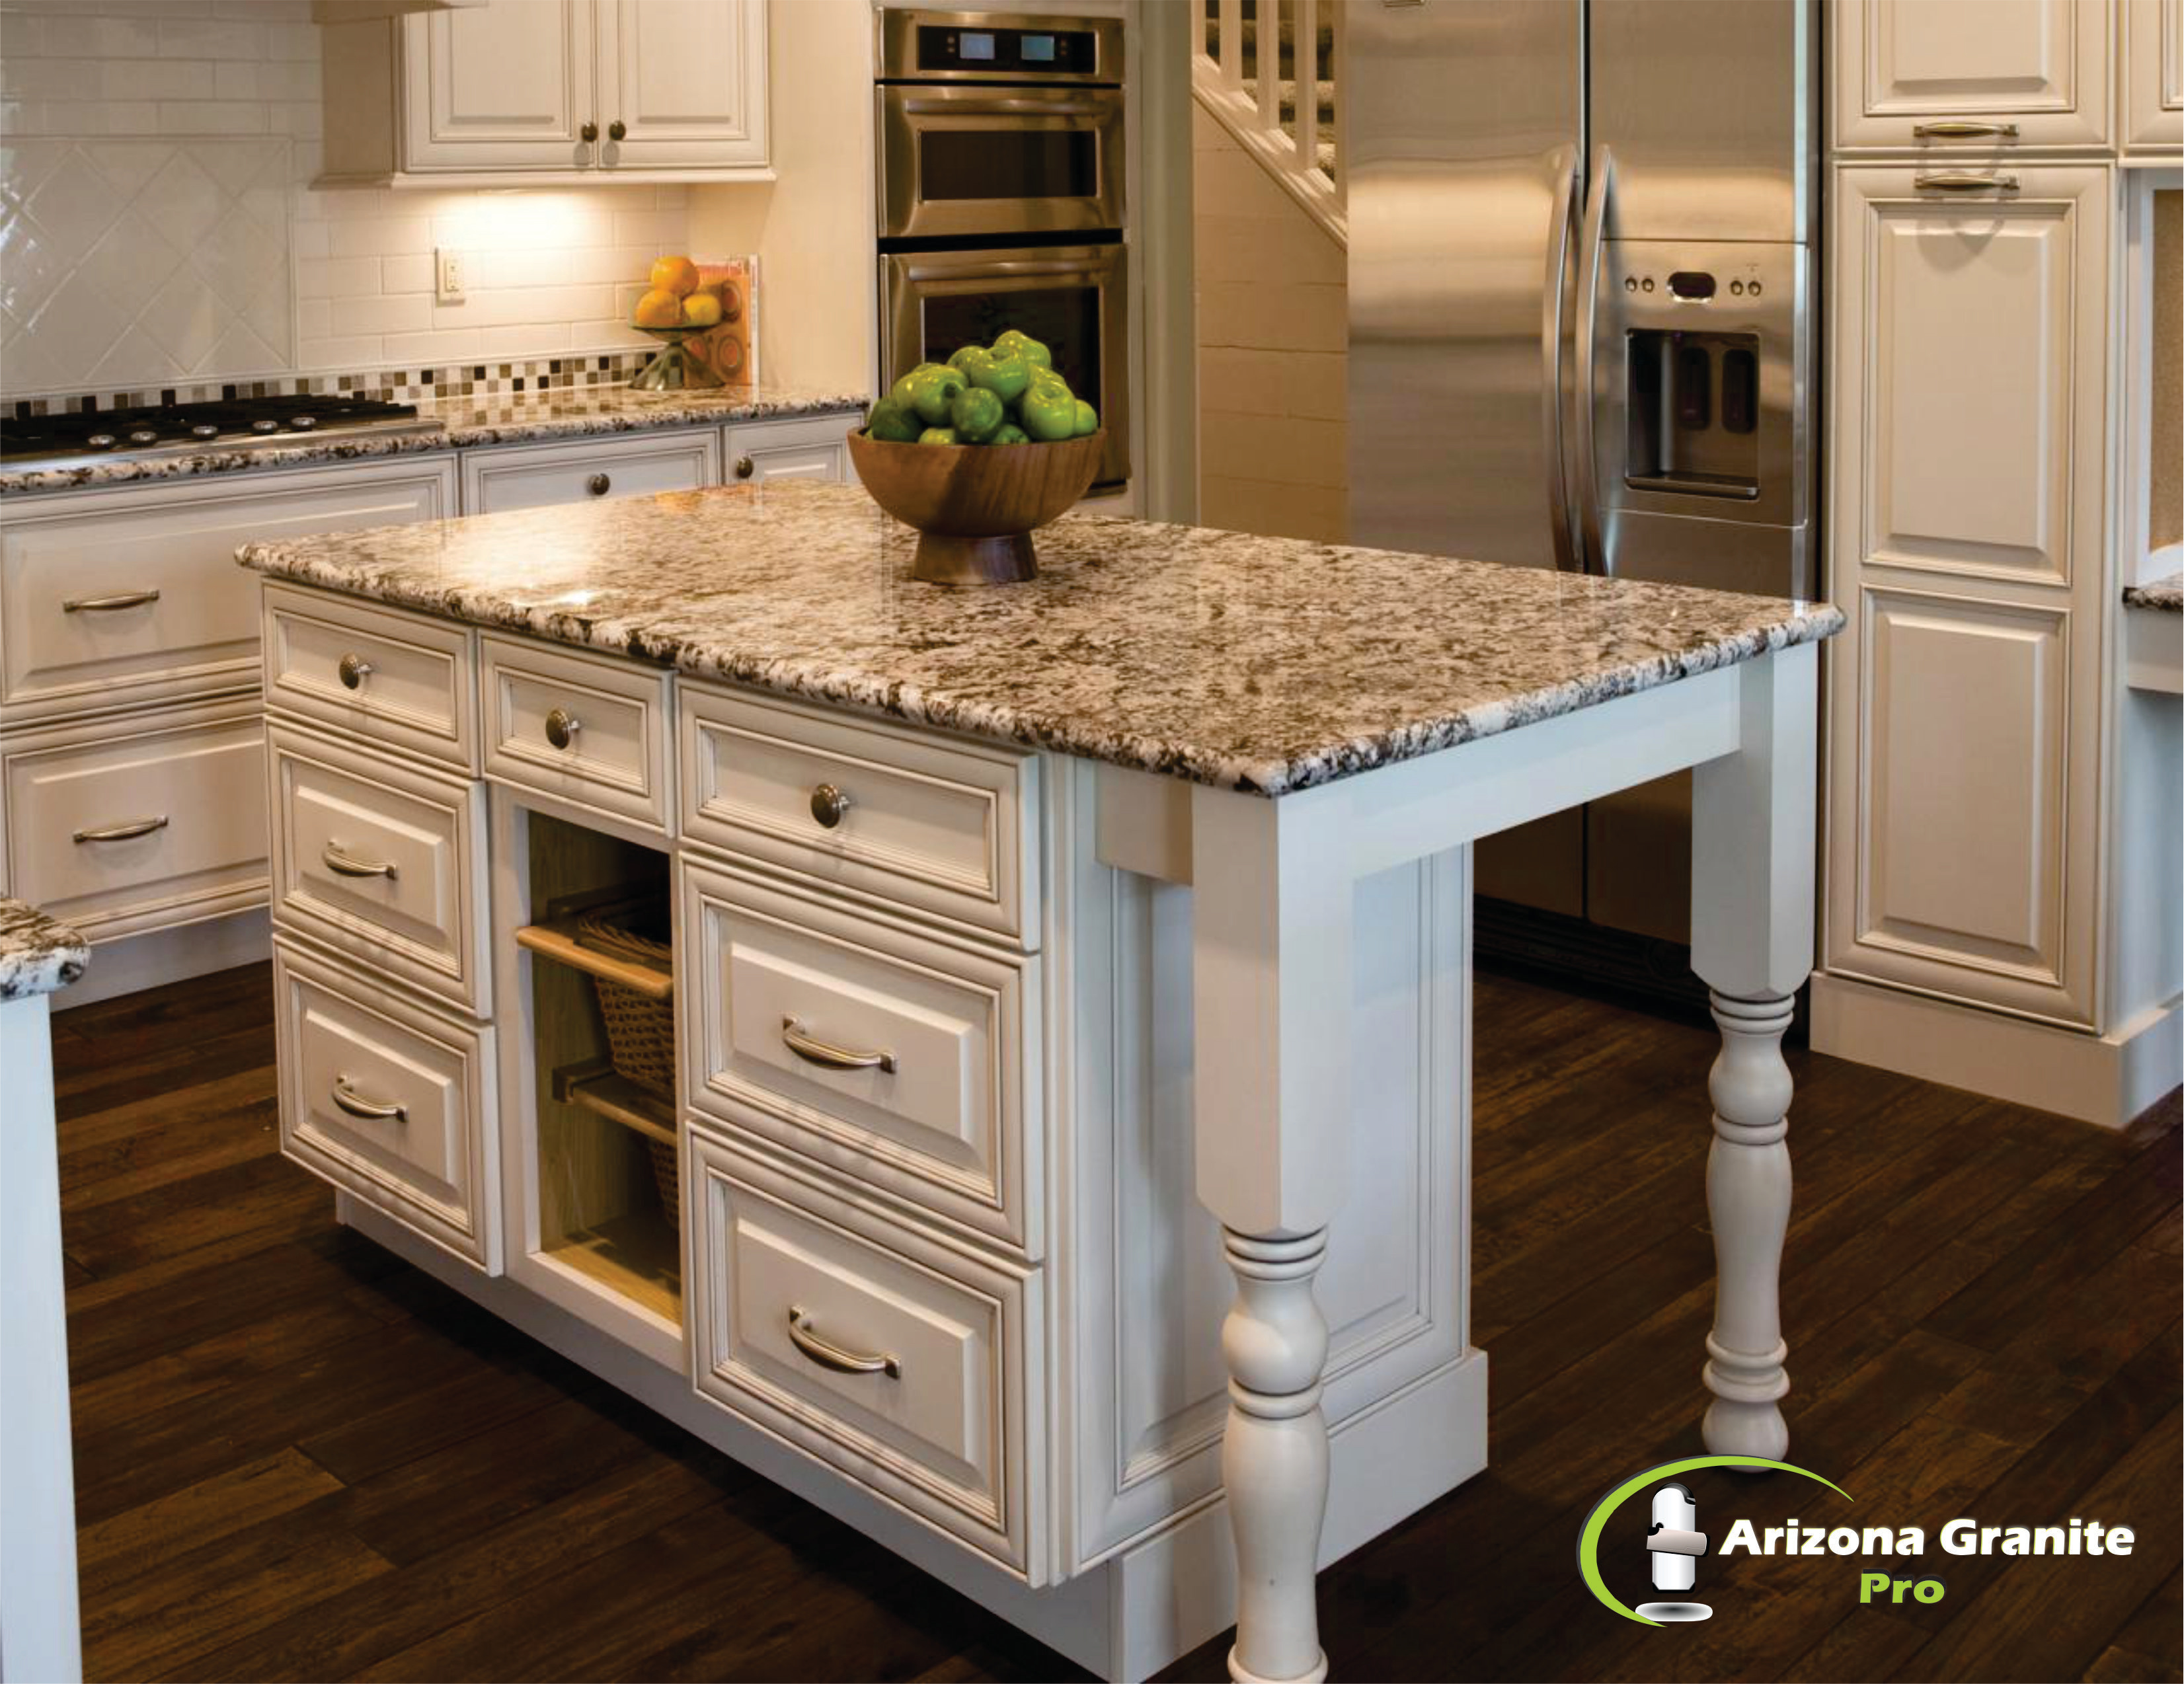 Granite-Kitchen-Arizonagranitepro3